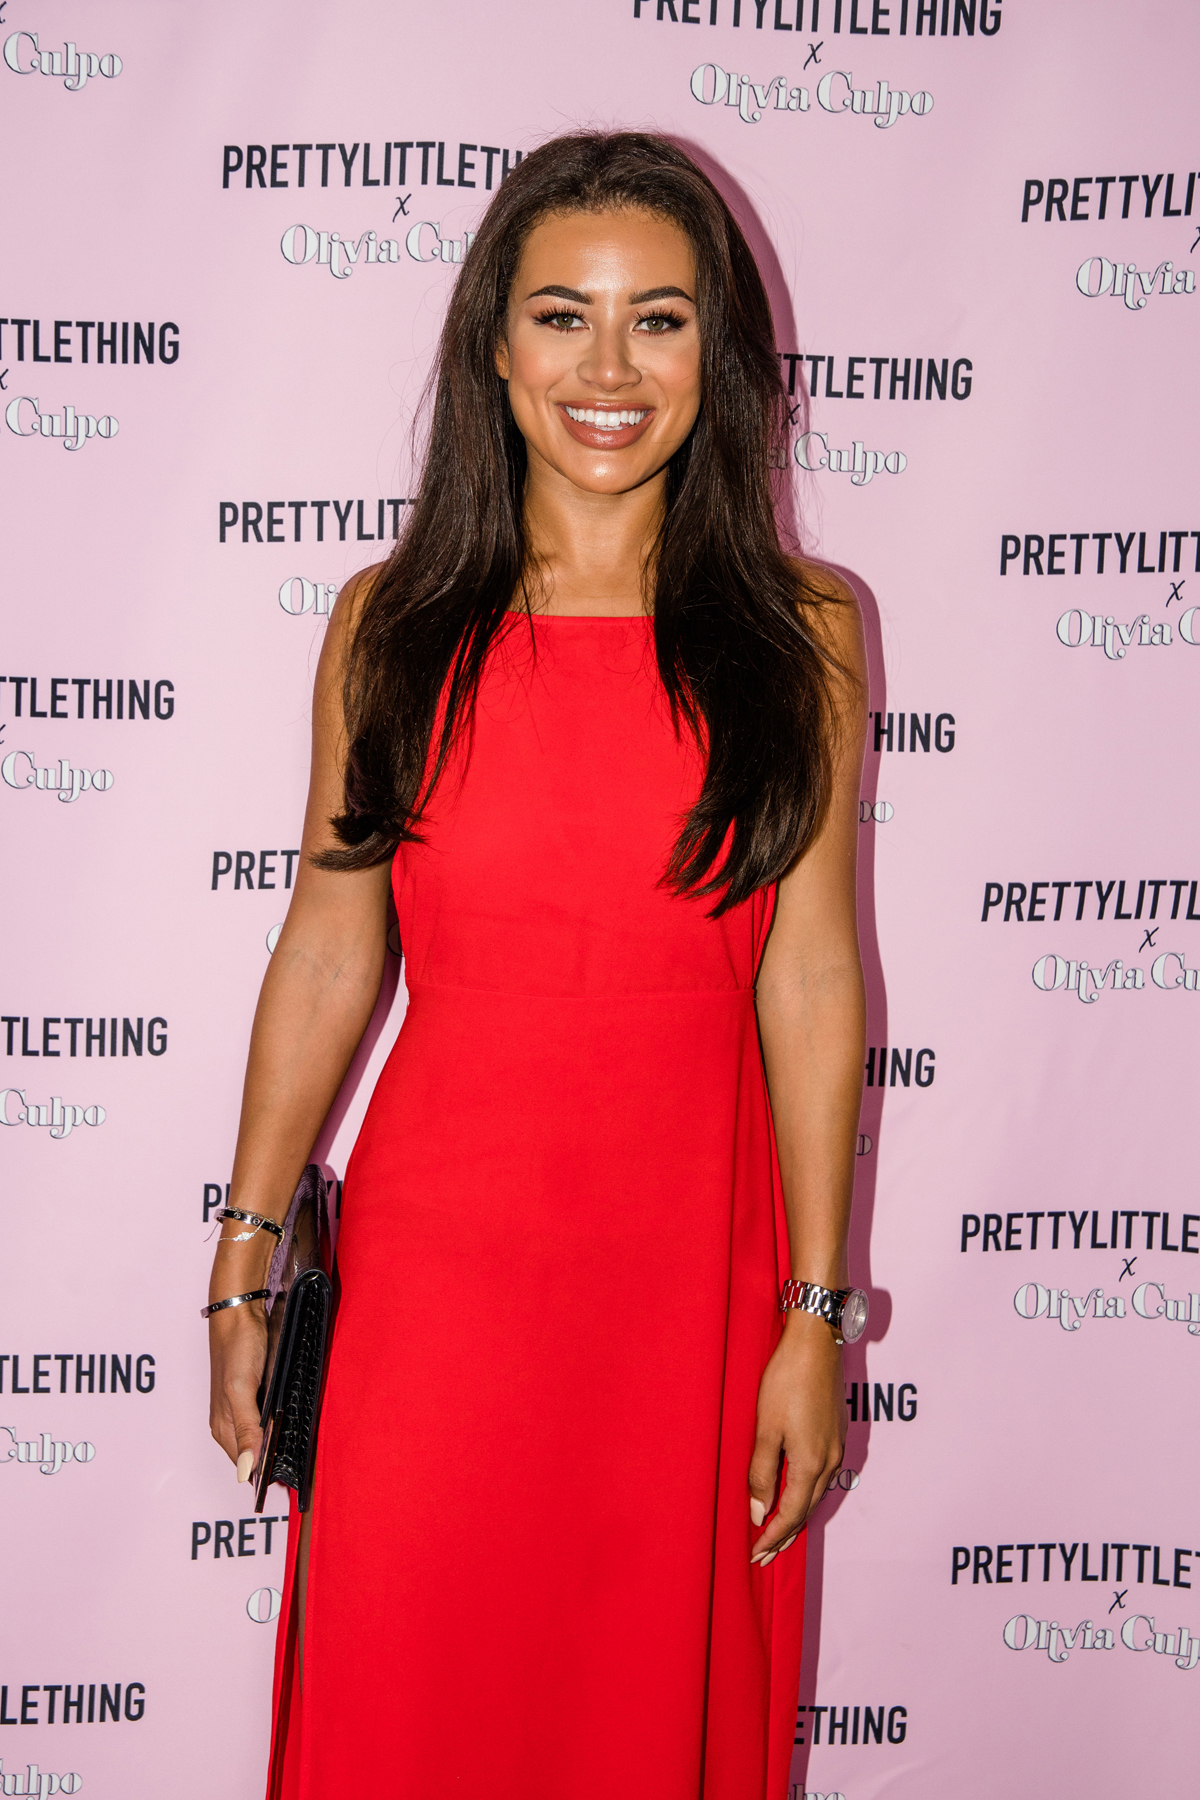 PrettyLittleThing PLT X Olivia Culpo Collection  Celebrity Launch Party Love Islands Montana Brown.jpg